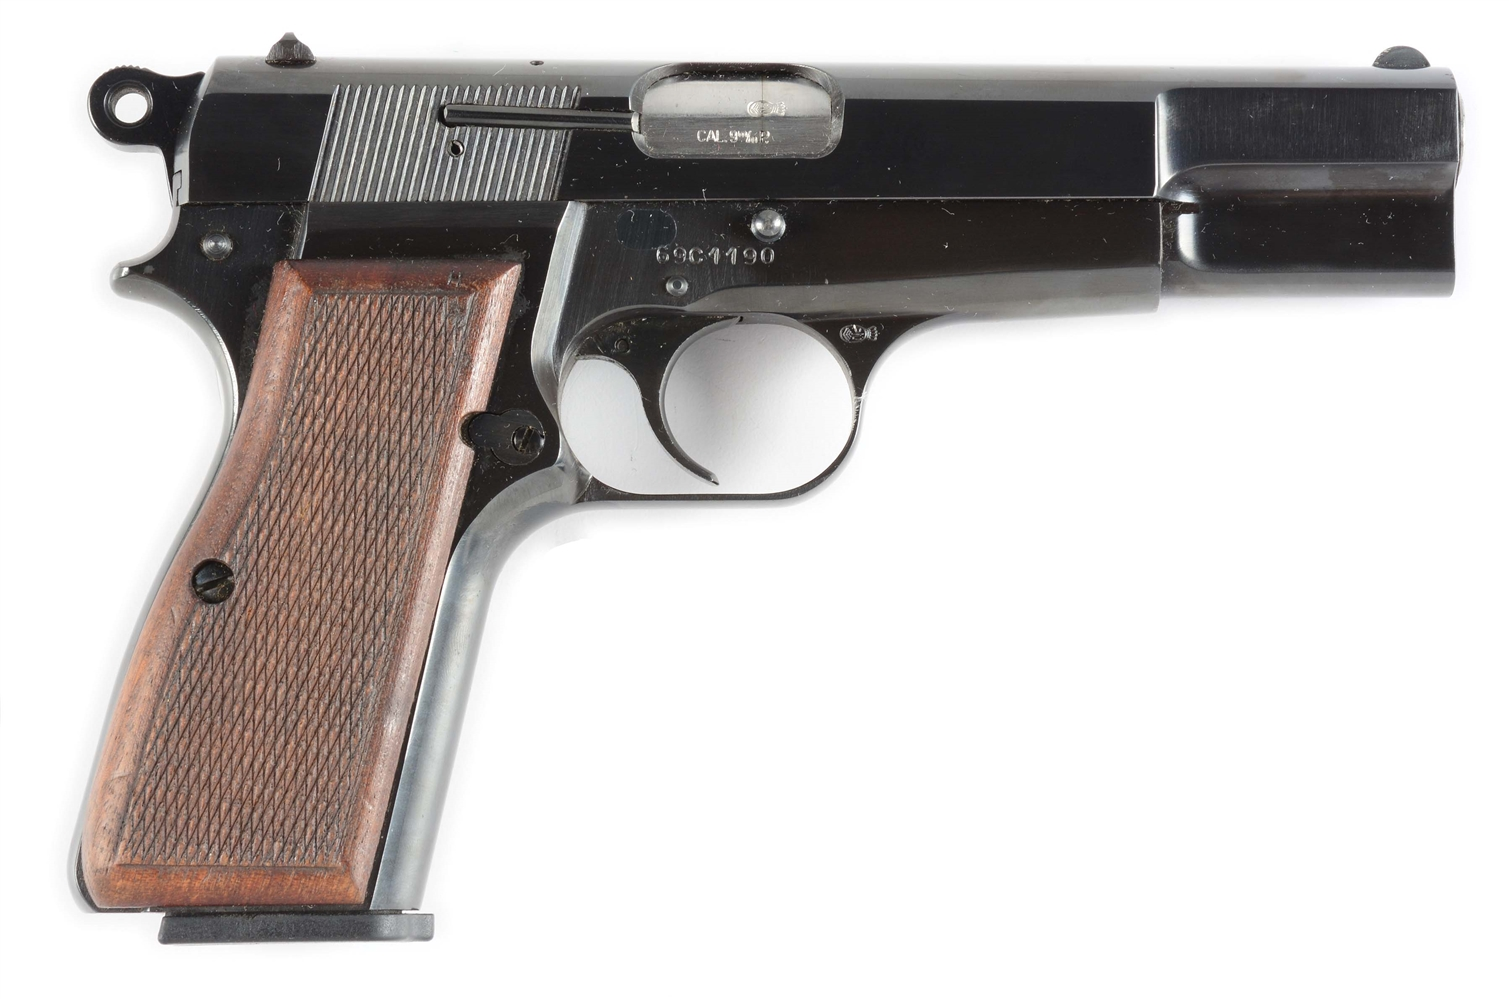 (C) Browning High Power Semi-Automatic Pistol (1969).